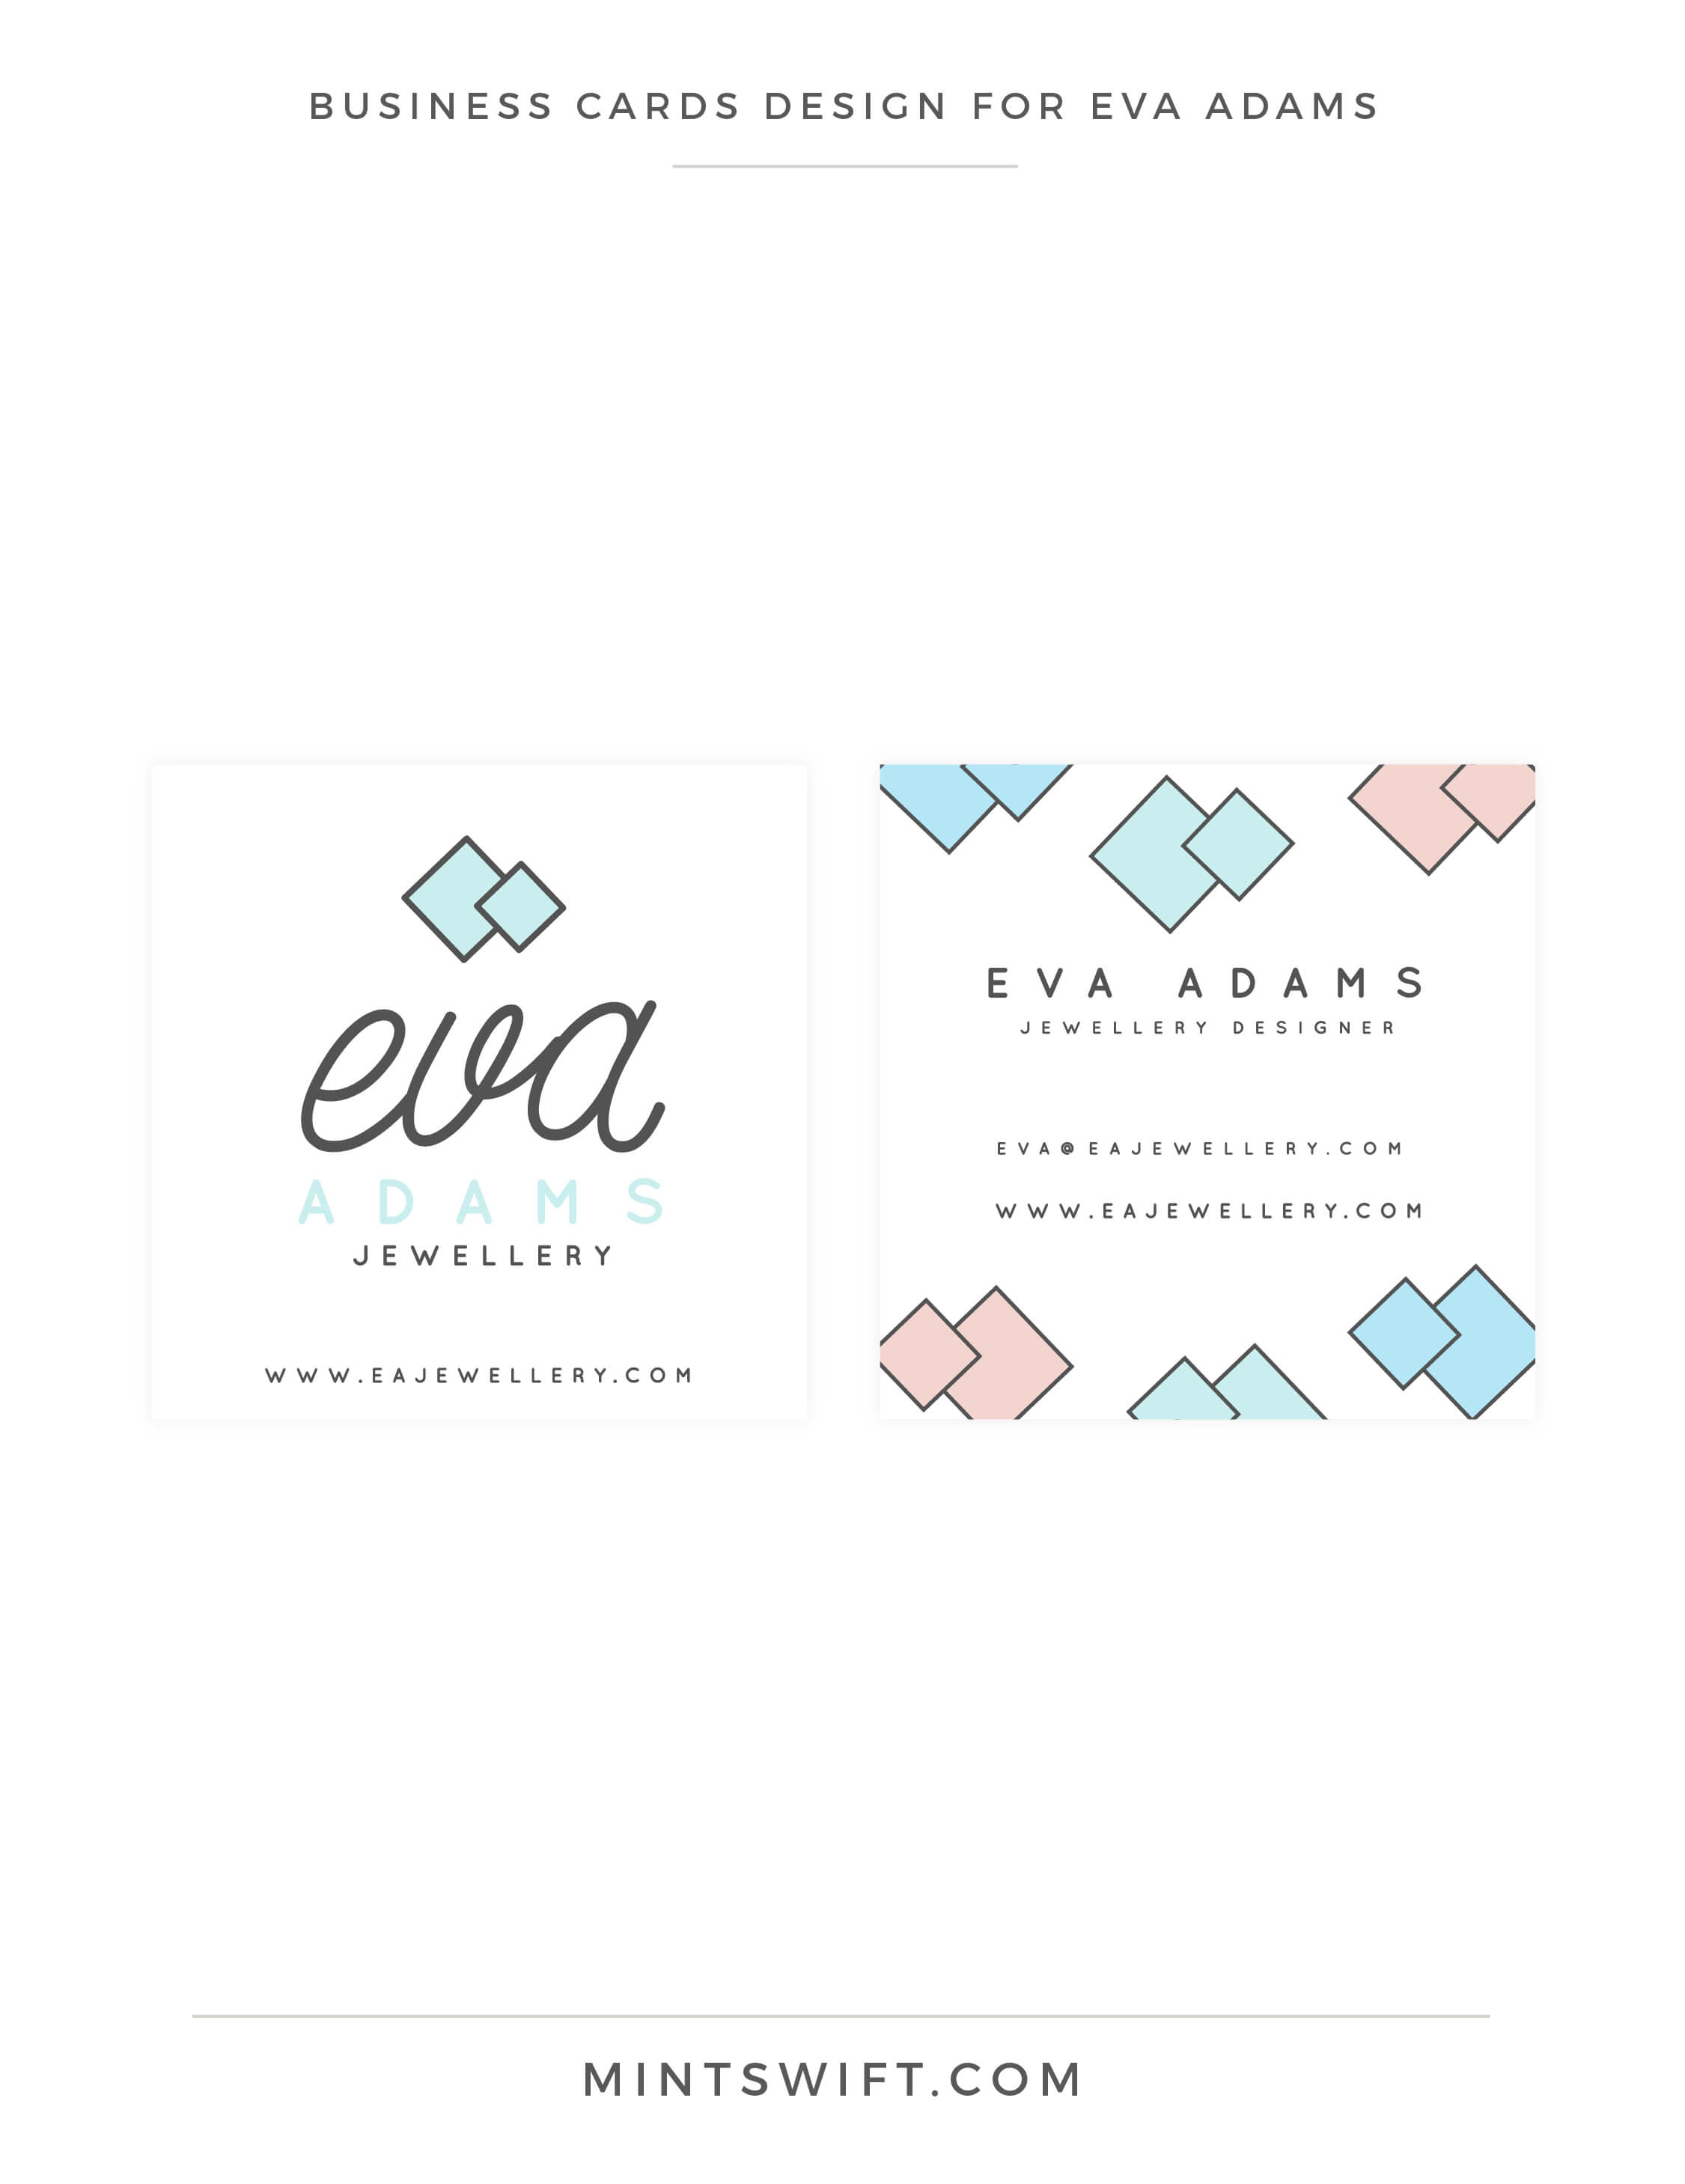 Eva Adams - Business cards design - MintSwift